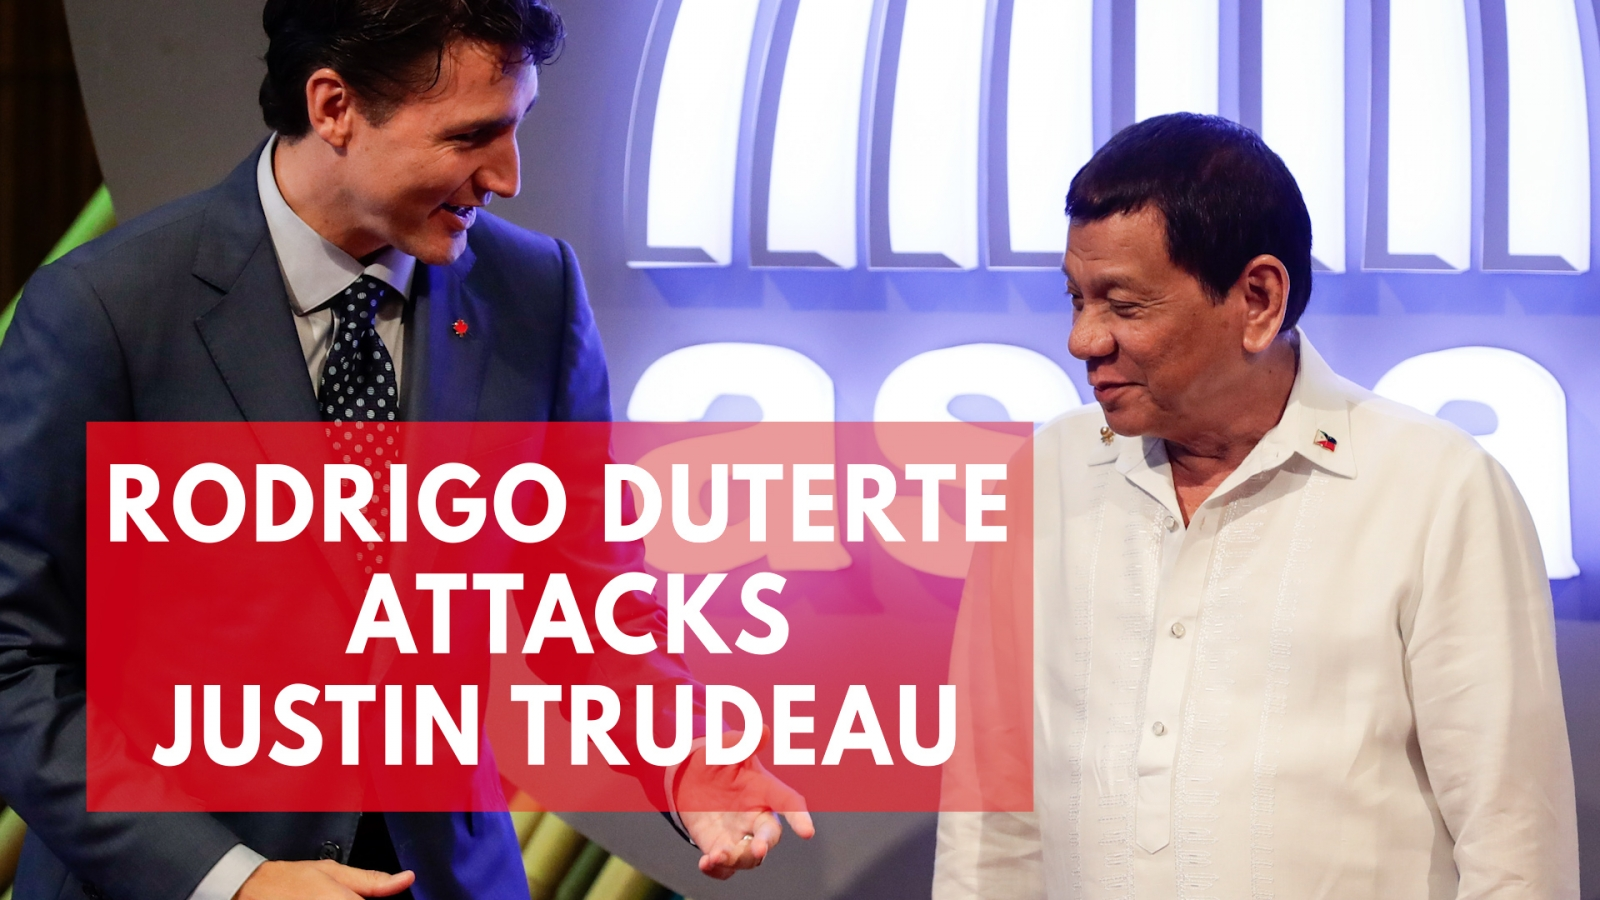 duterte-feels-insulted-by-justin-trudeaus-question-on-drug-related-killings-in-philippines